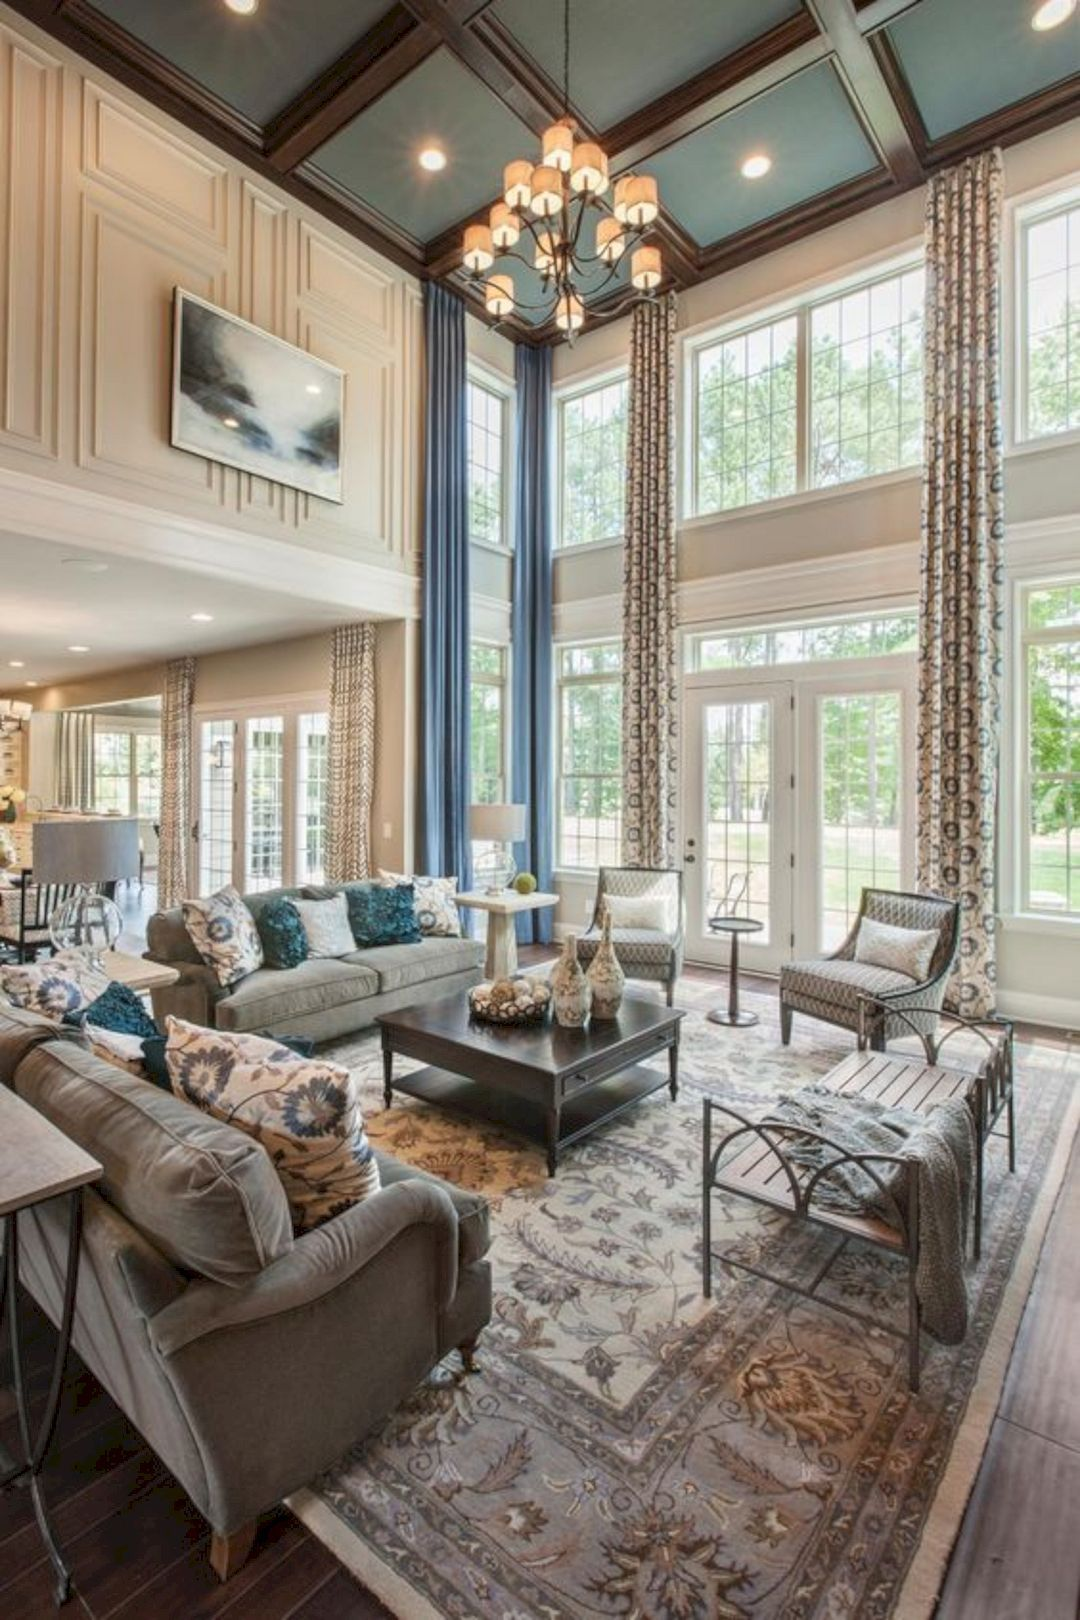 15 Amazing Furniture Layout Ideas To Arrange Your Family Room Modern Glam Living Room Glam Living Room Family Room Design